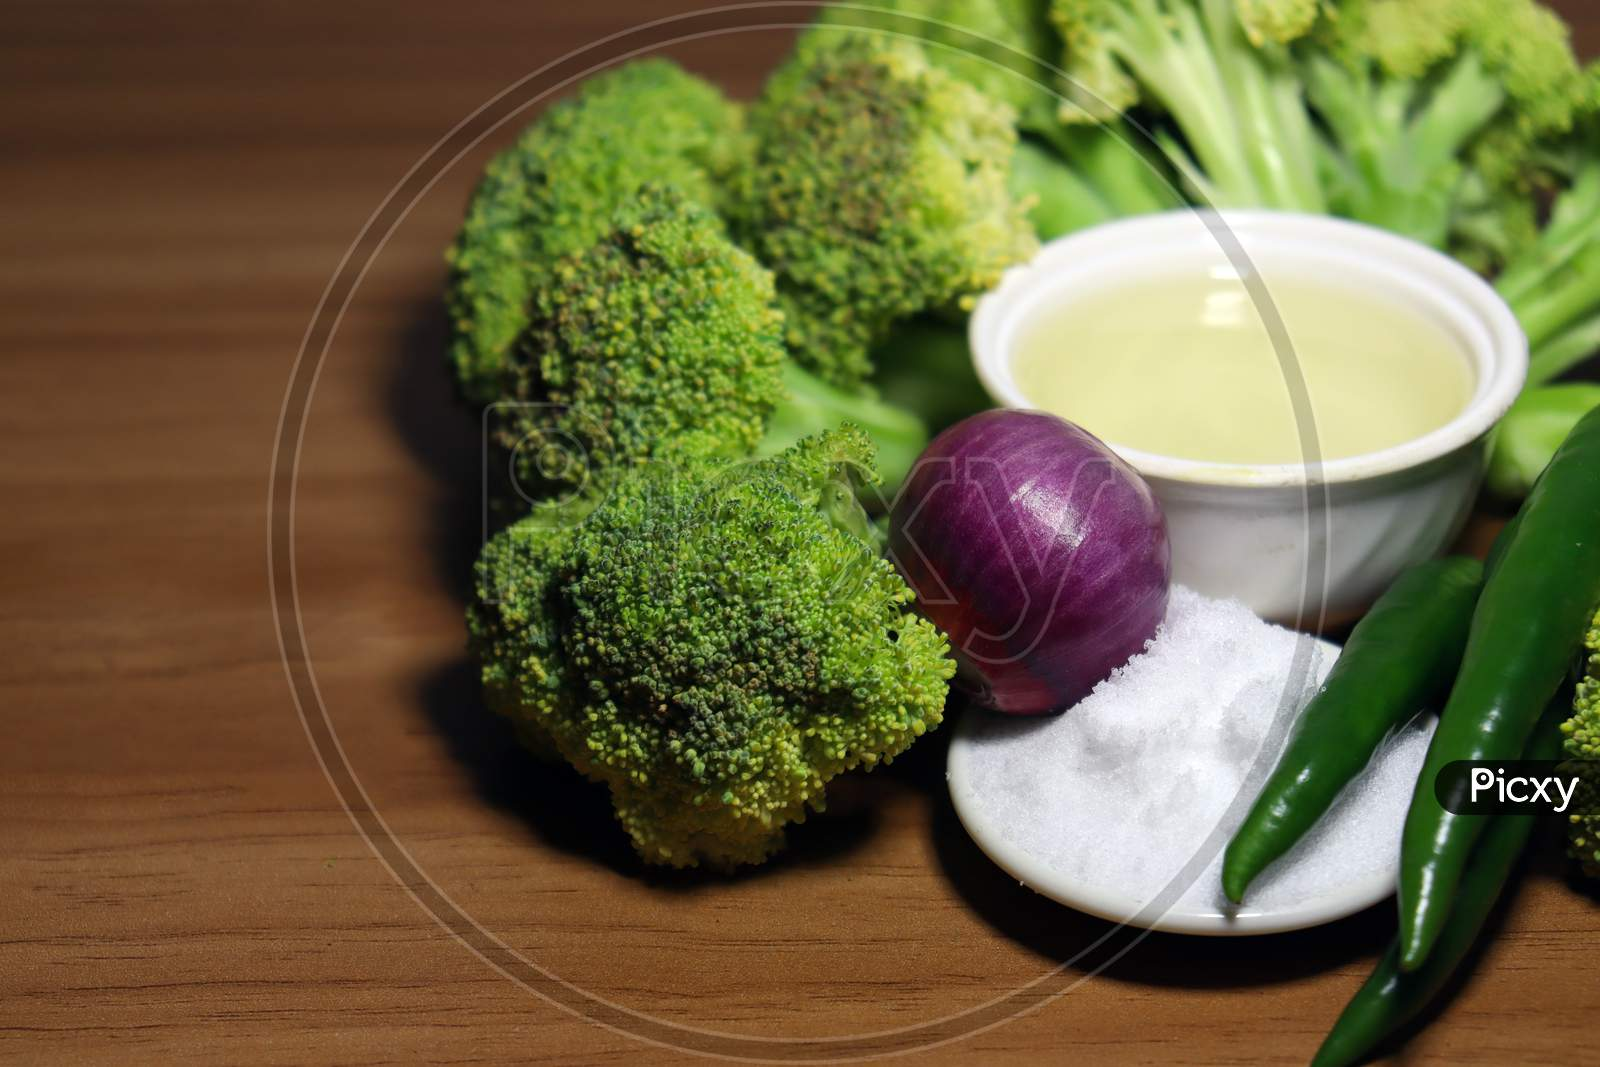 Sliced Broccoli With Spices Stock On Wooden Table